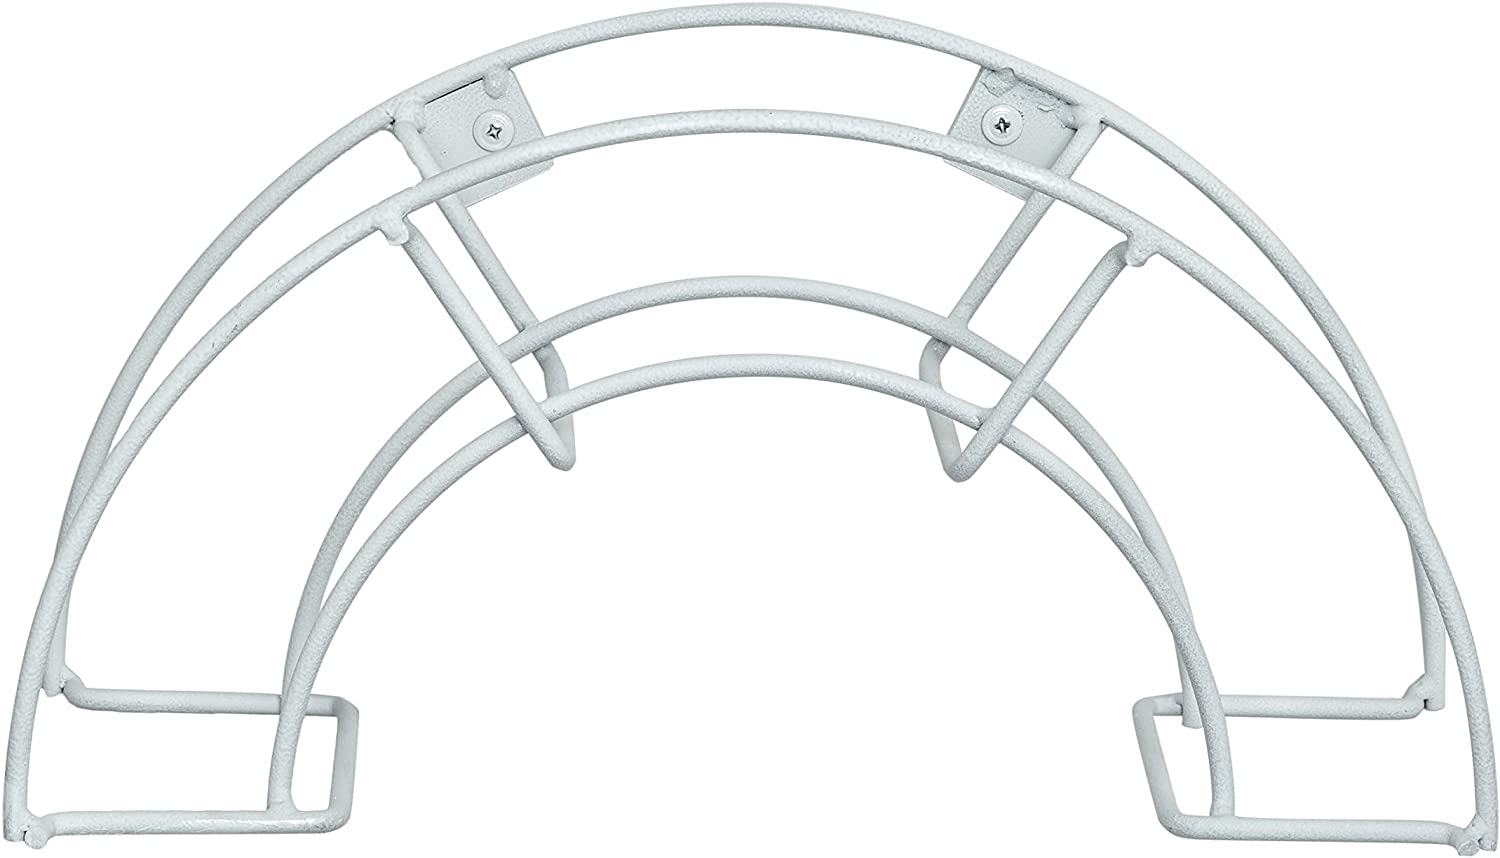 Quality Choices Metal Garden Water Hose Holder – Rust-Resistant Coated Steel Hanger for 150 ft. Standard Wall Mount Garden Hose Rack (Round, White)